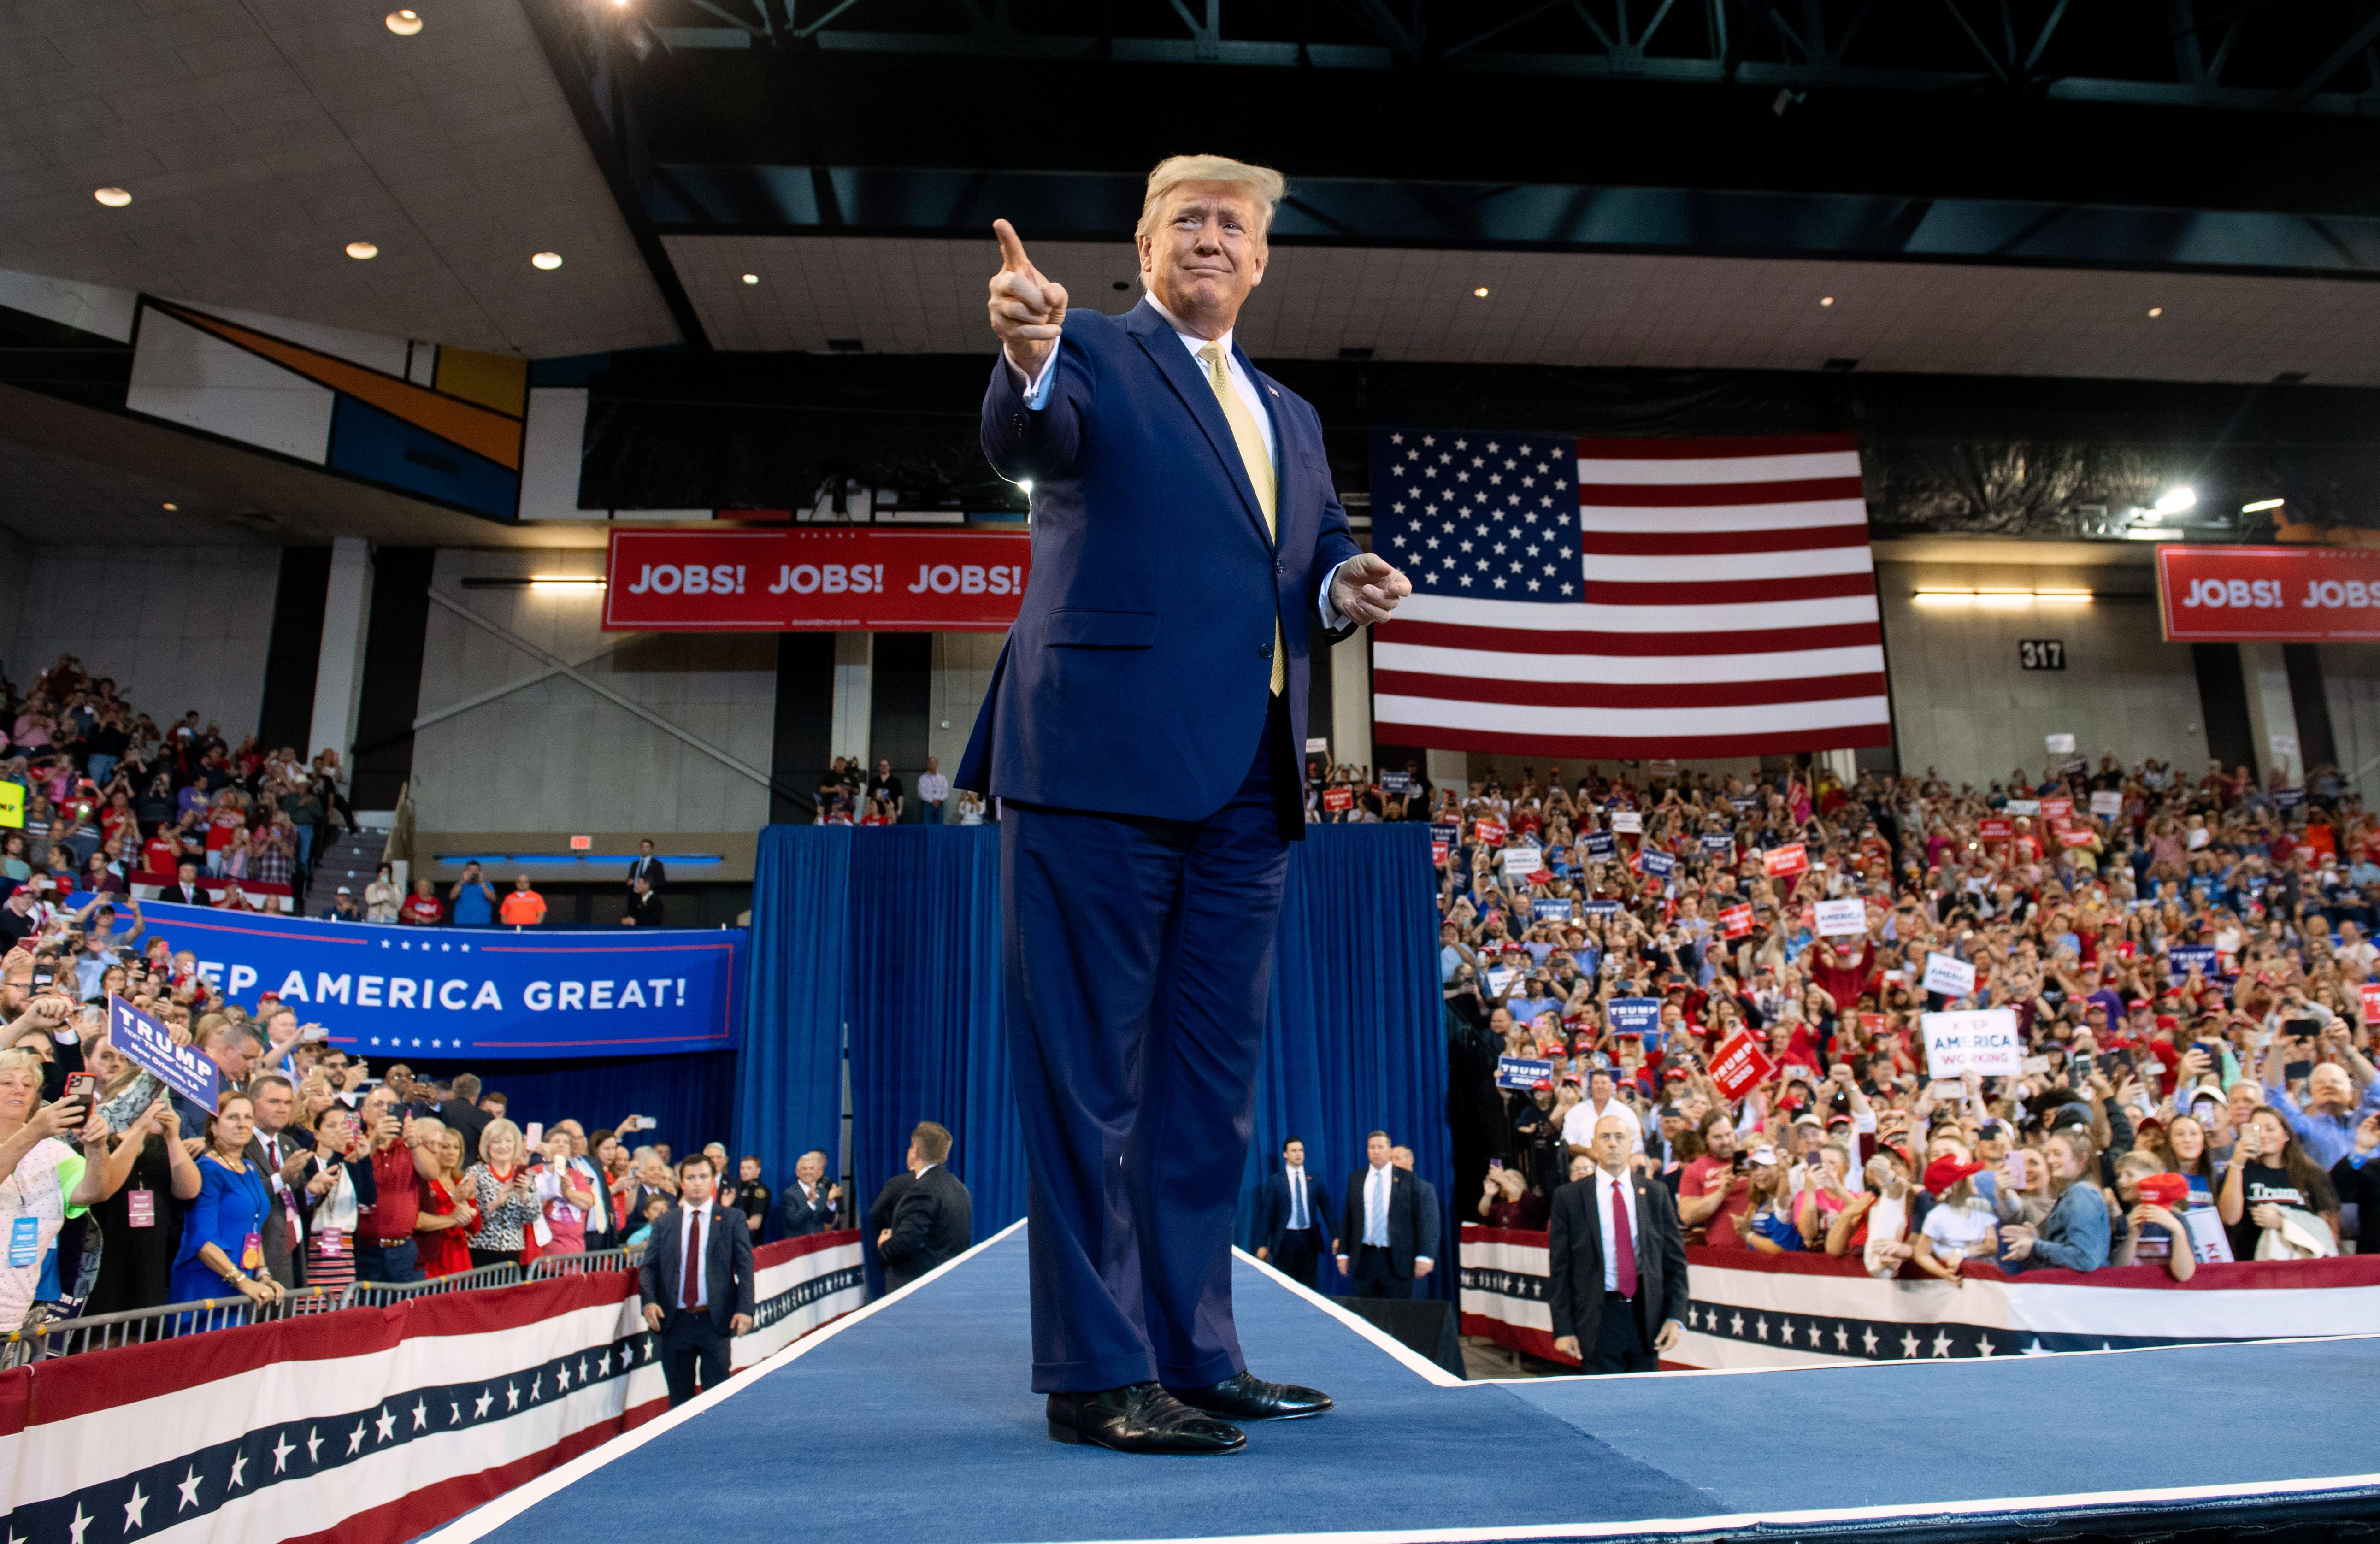 Trump went to Louisiana to stump for local Republicans. He ended up attacking national Democrats instead.